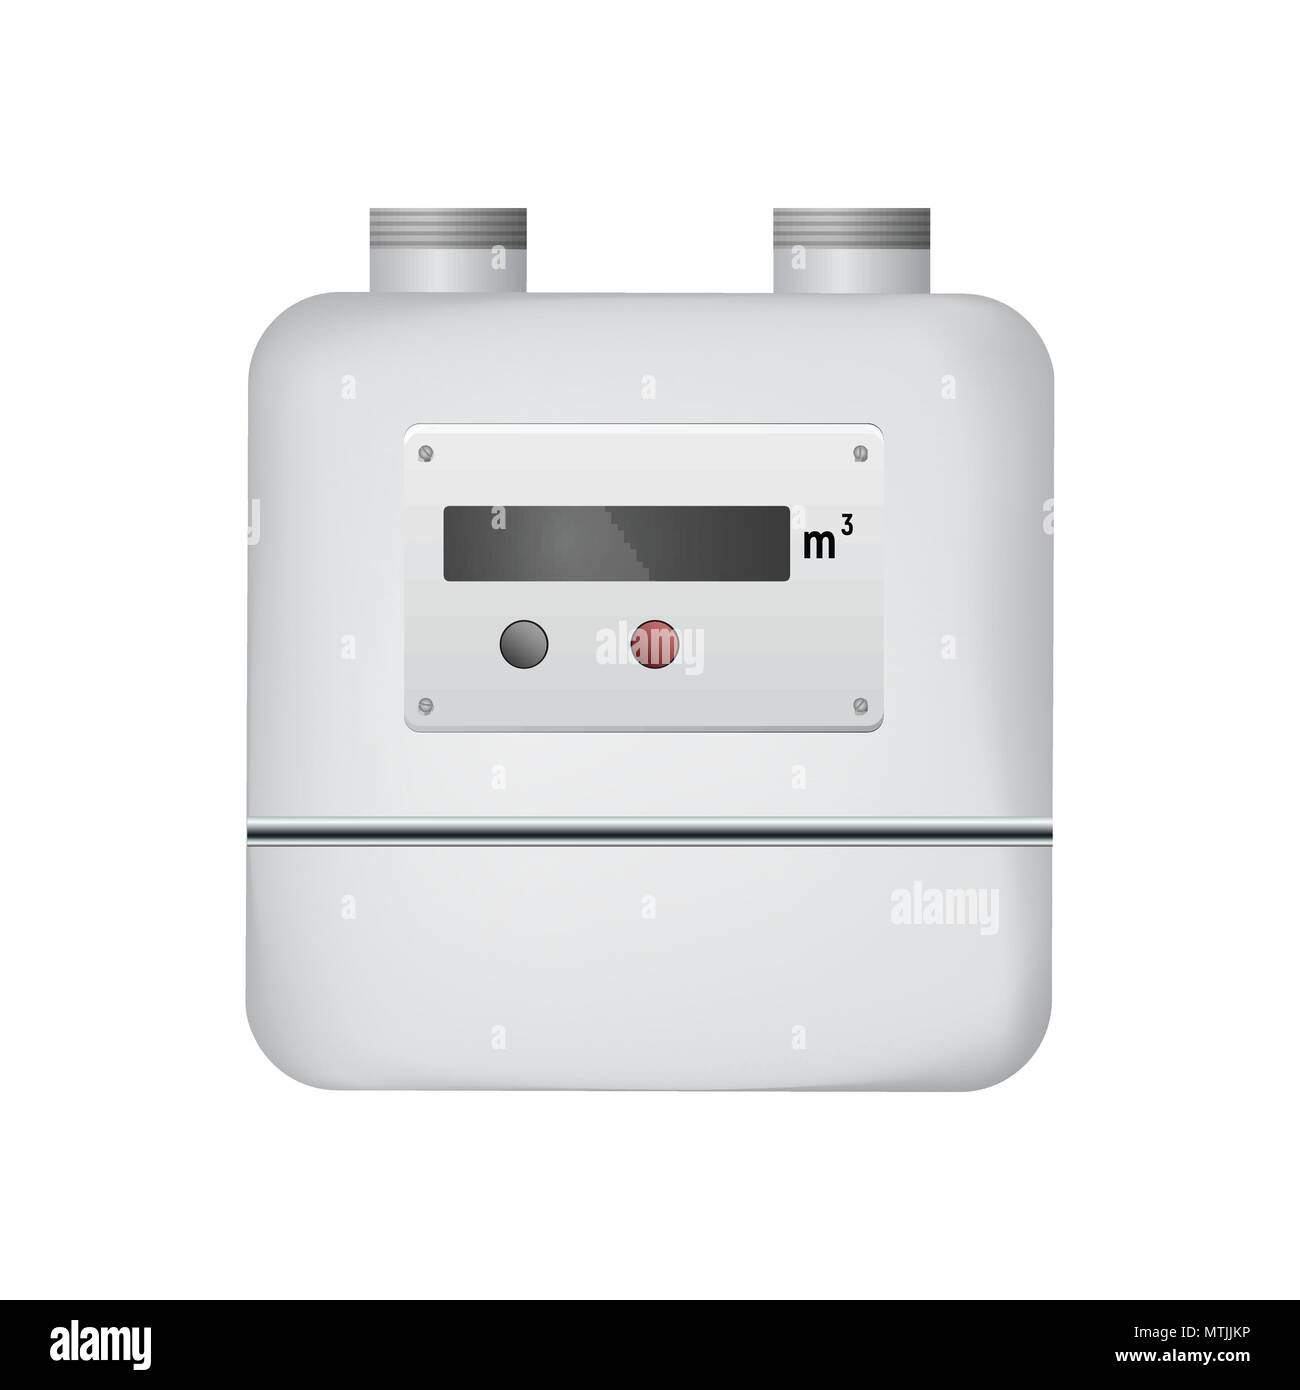 Gas meter - Stock Image